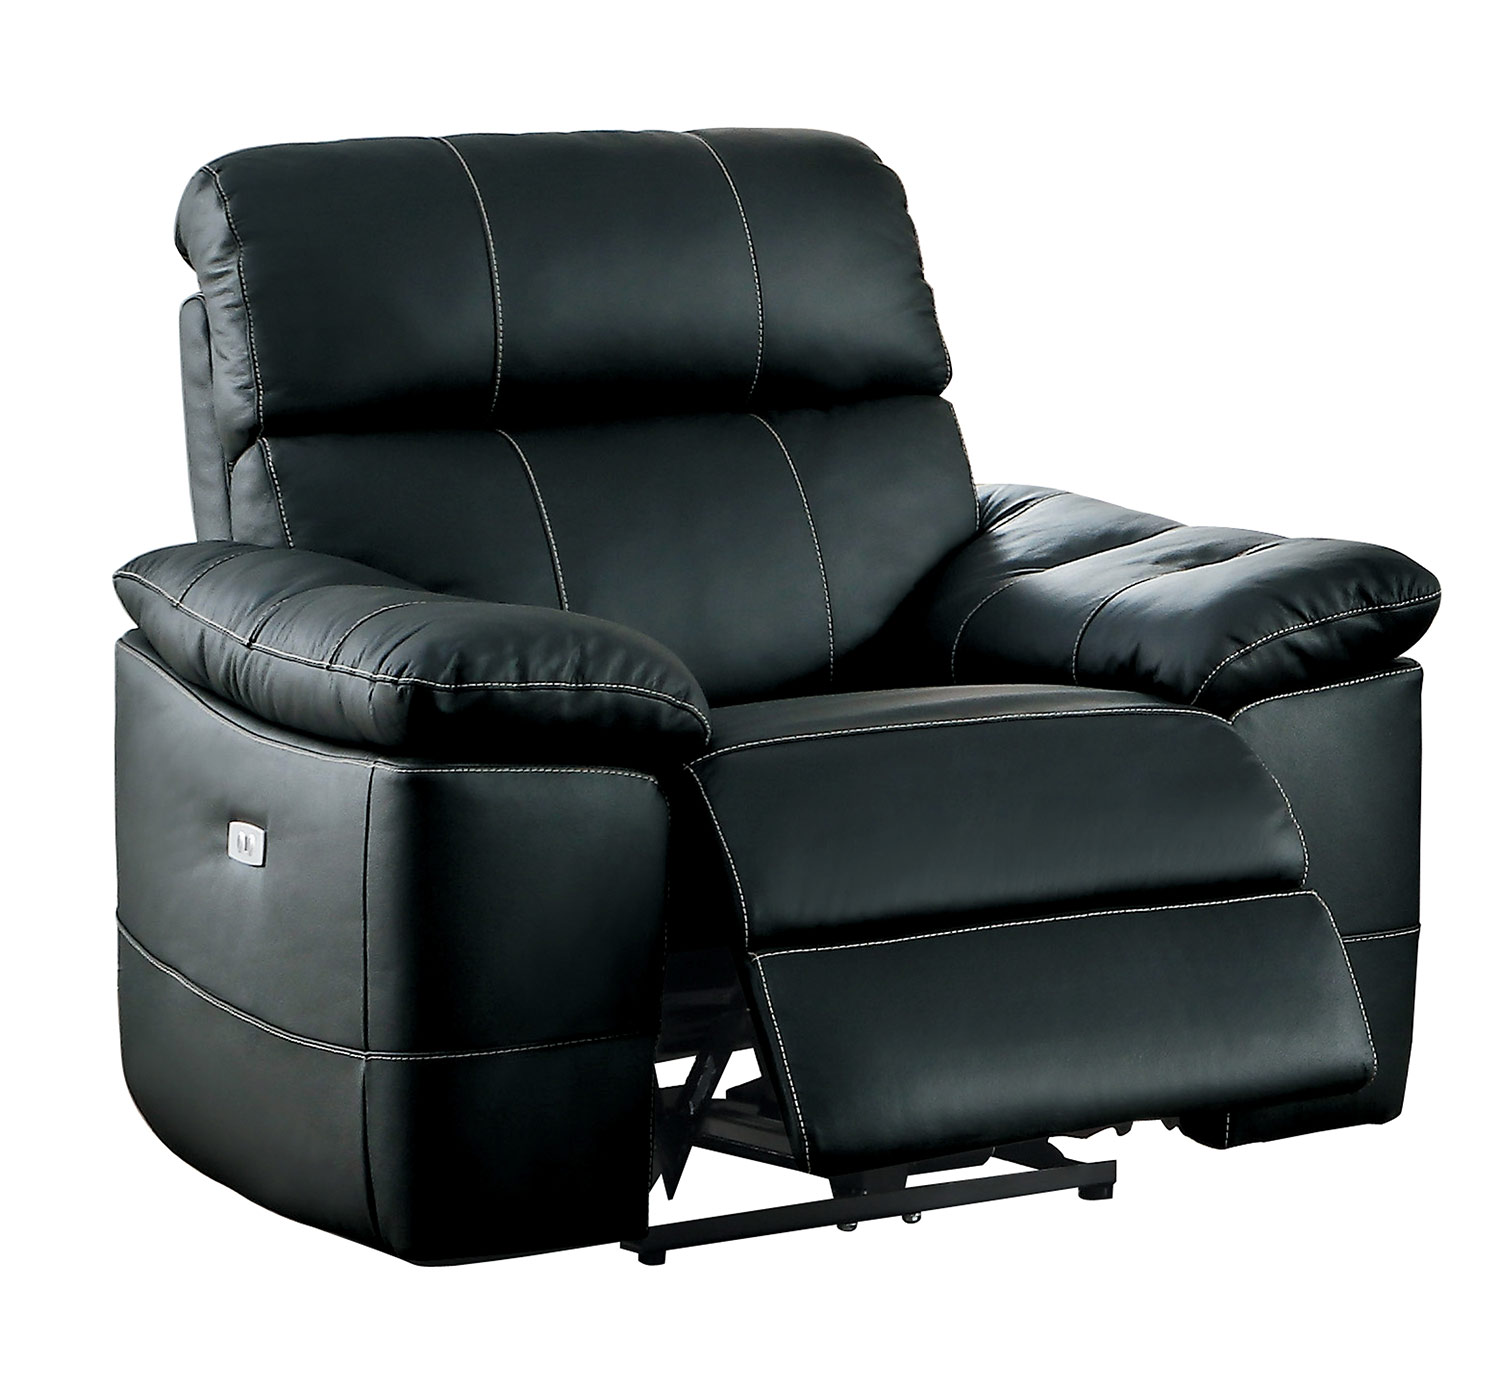 Homelegance Nicasio Power Reclining Chair - Black Leather